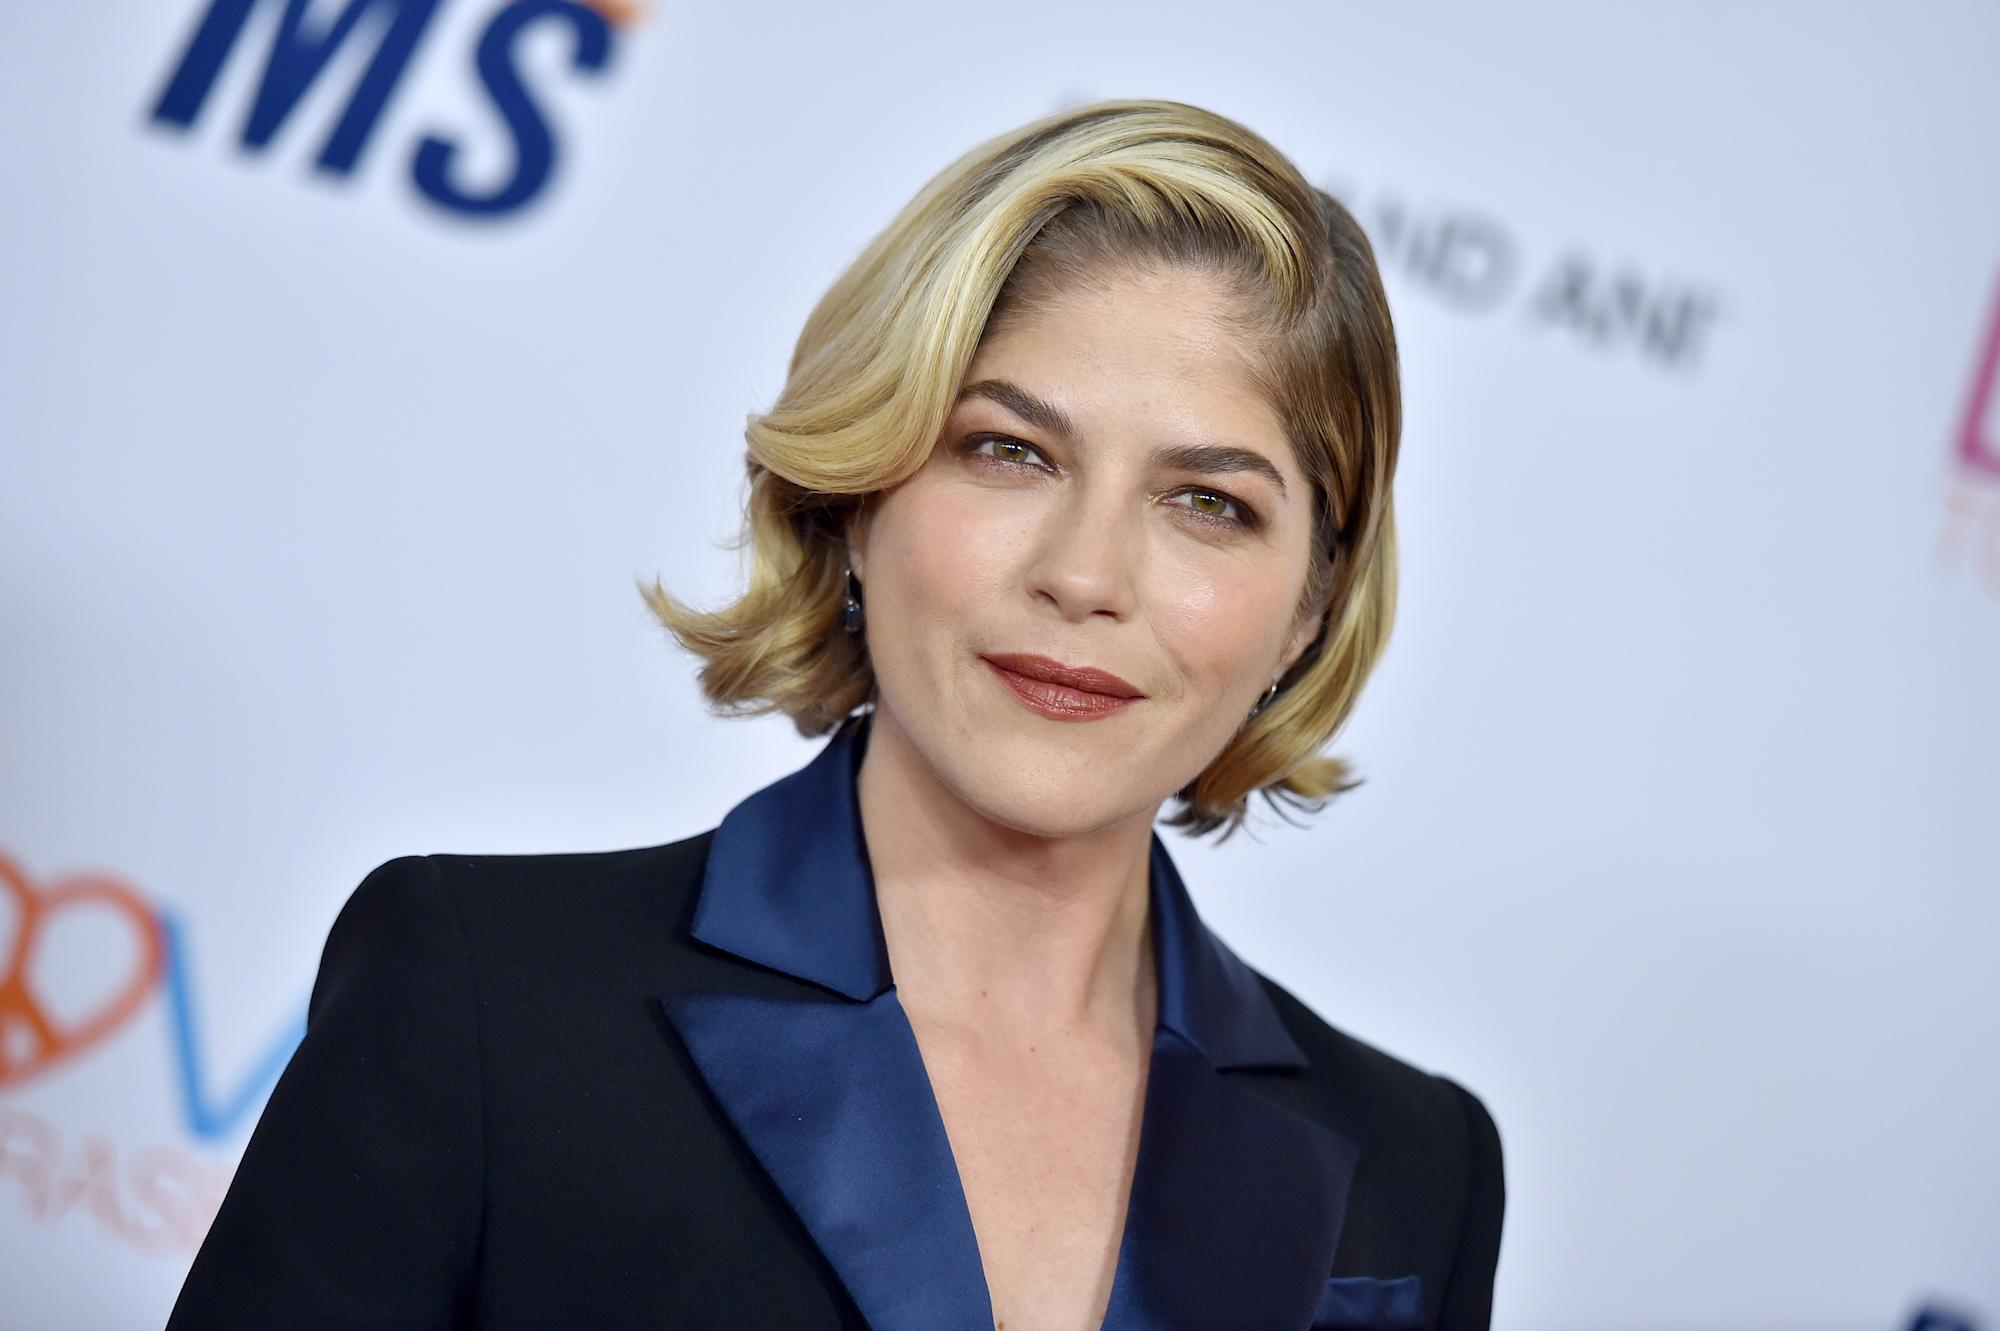 Selma Blair says son 'can read whatever he wants' amid Dr. Seuss controversy: 'I don't believe in book banning' - Yahoo Lifestyle